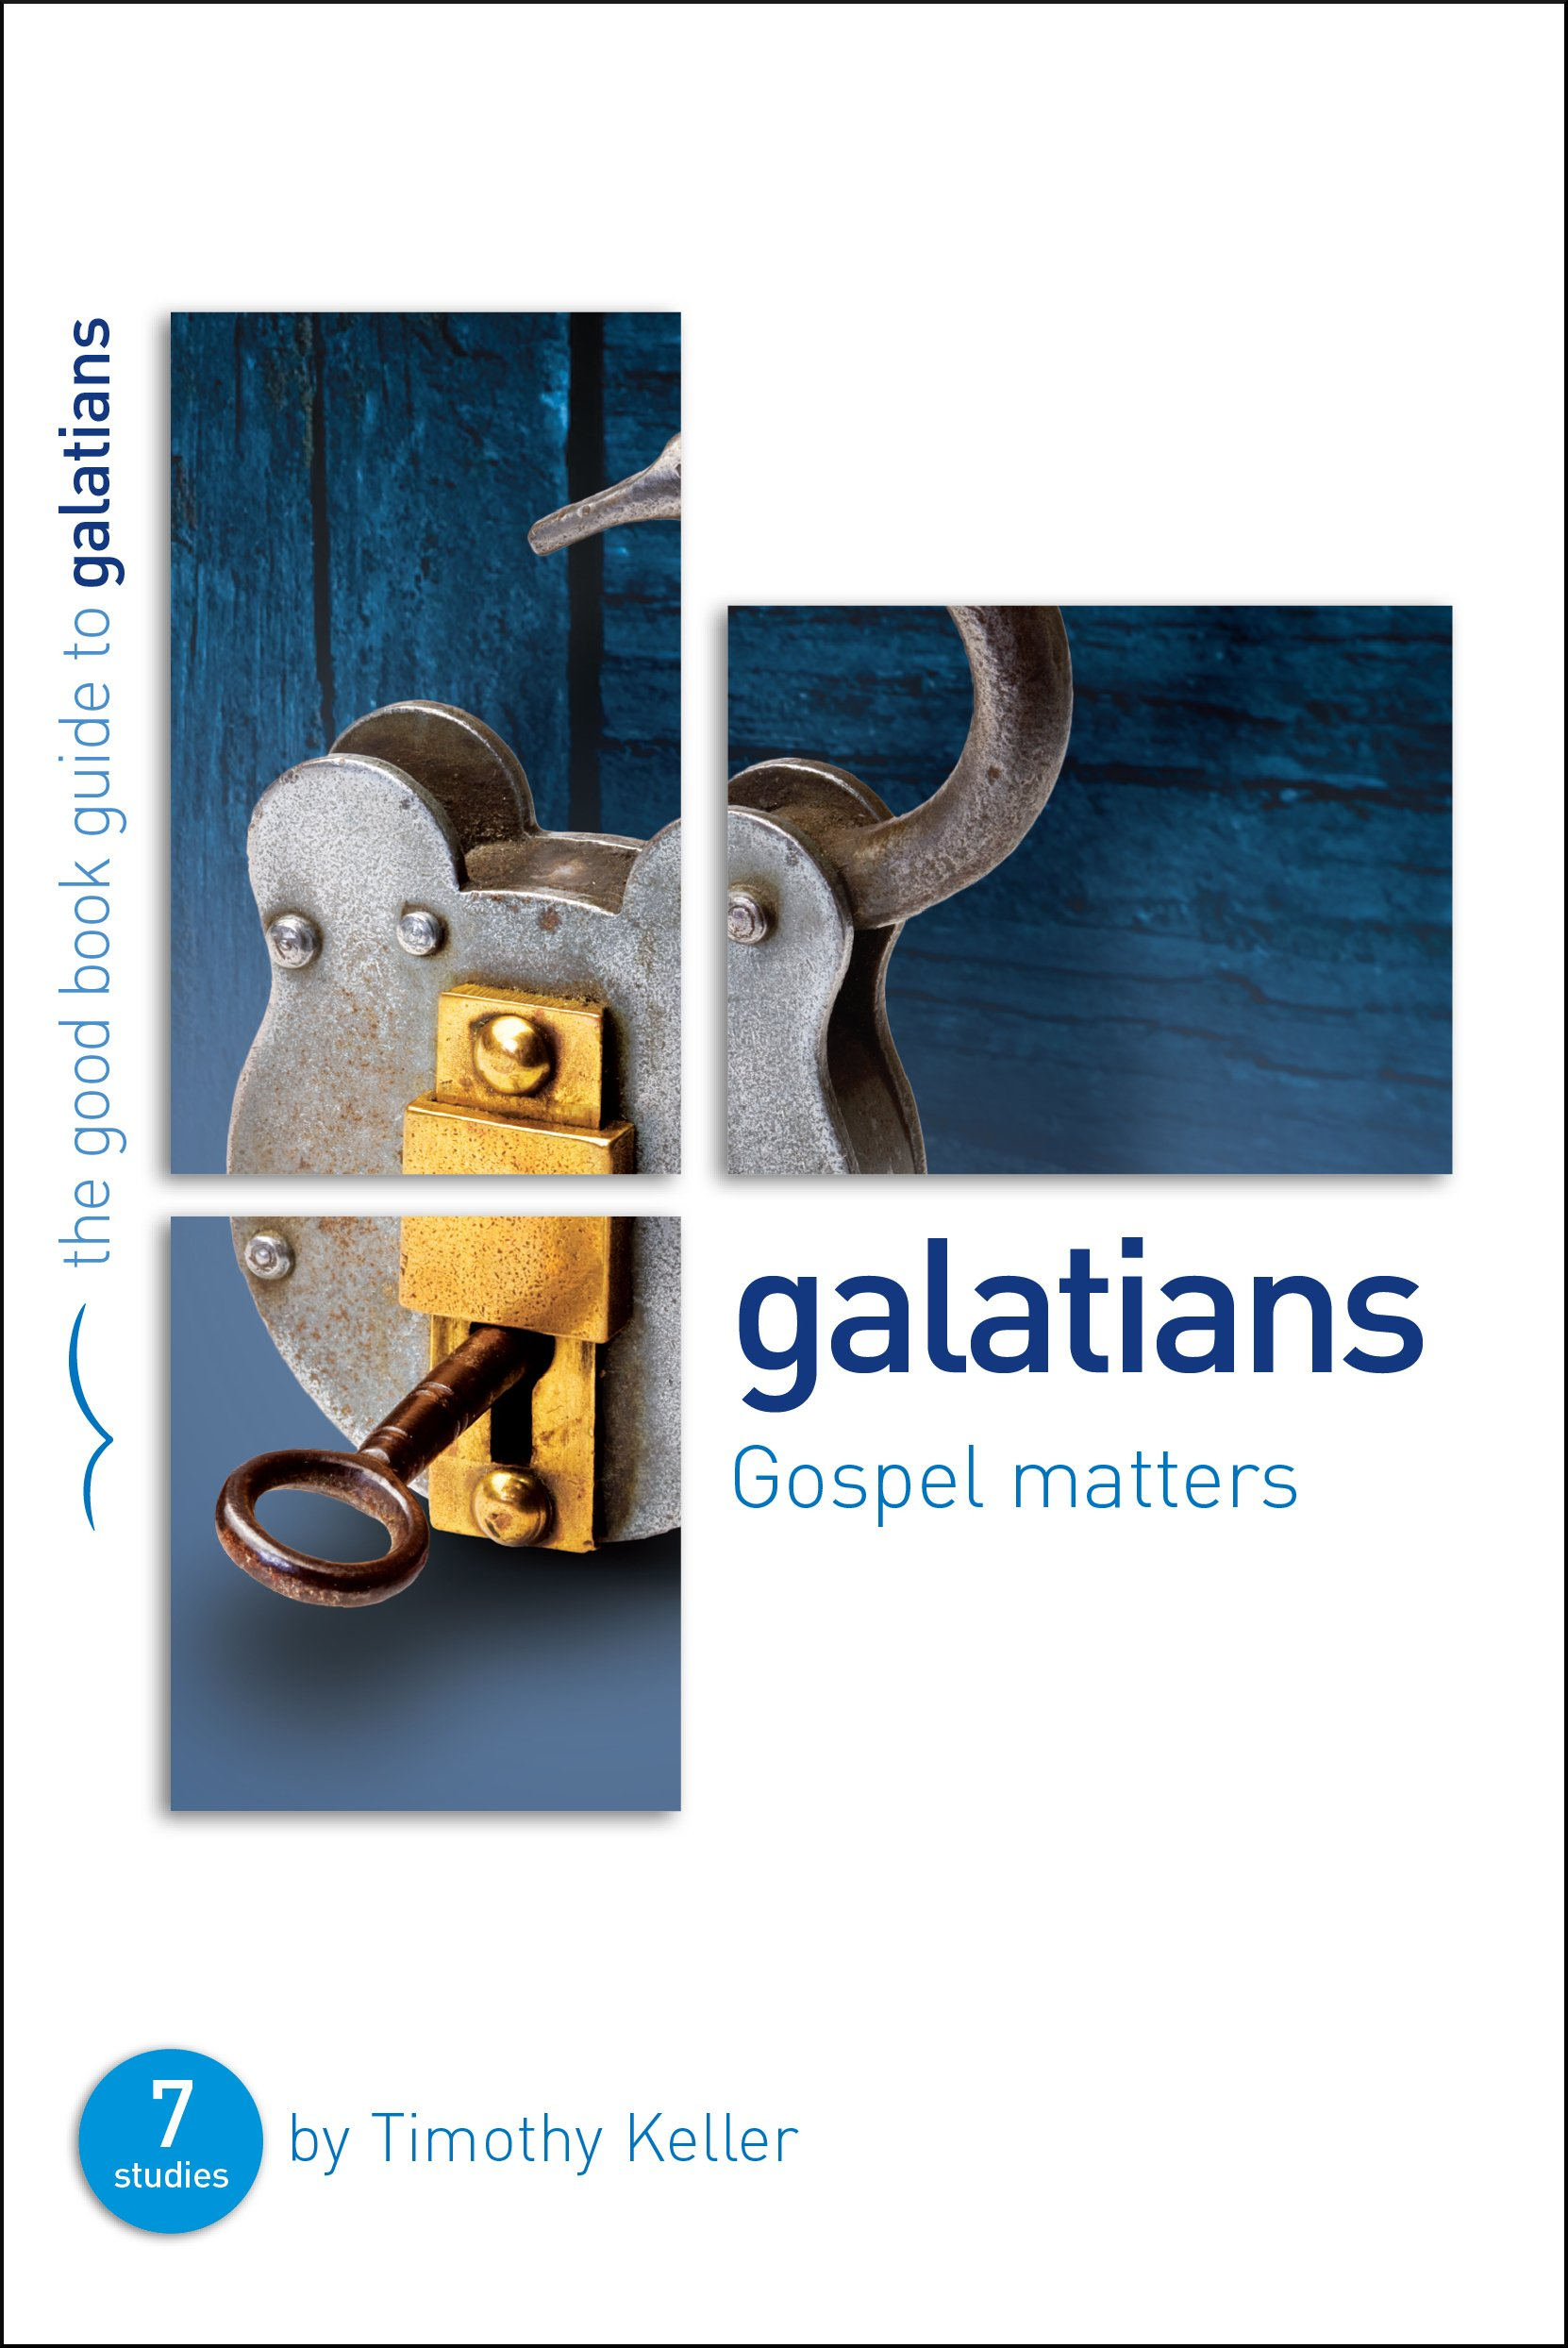 Galatians: Gospel Matters: Seven Studies for Groups or Individuals (Good Book Guide)